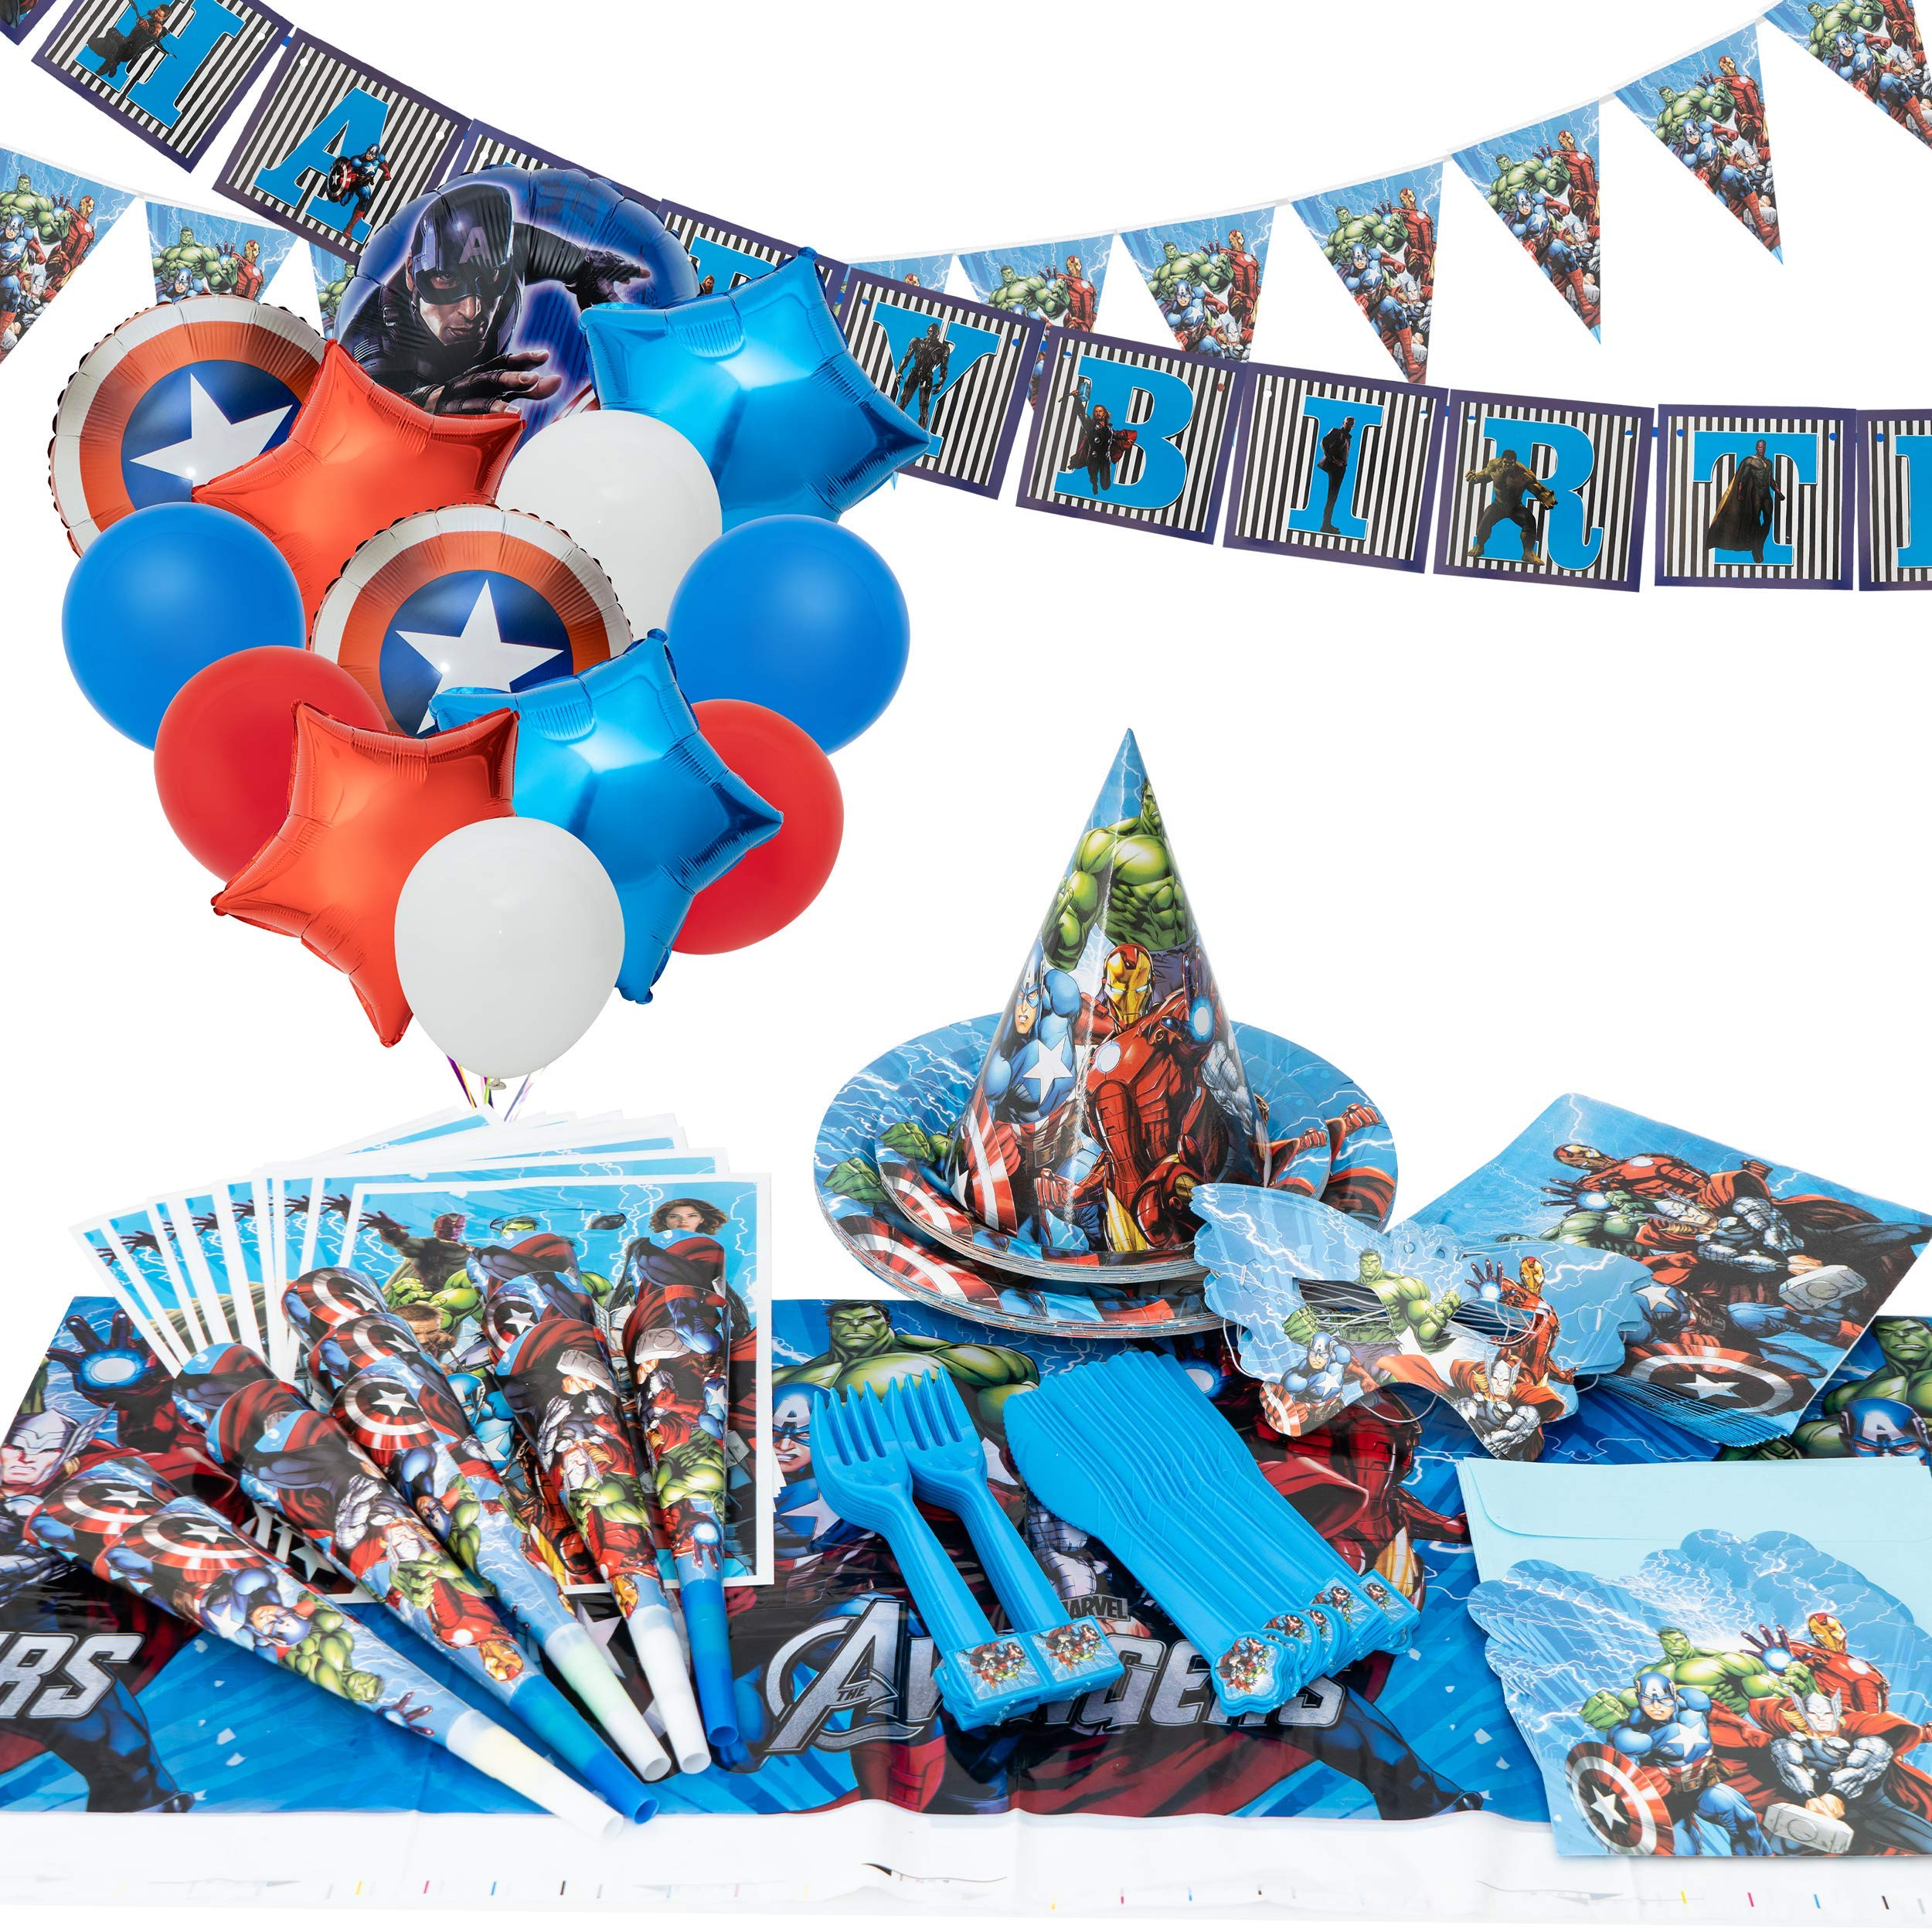 GK Galleria Avengers Party Supplies for 15 Superhero Guests with 200 Plus Items - Superhero Party Supplies - Avengers Birthday Party Supplies Decoration - Marvel Party Supplies - Captain America